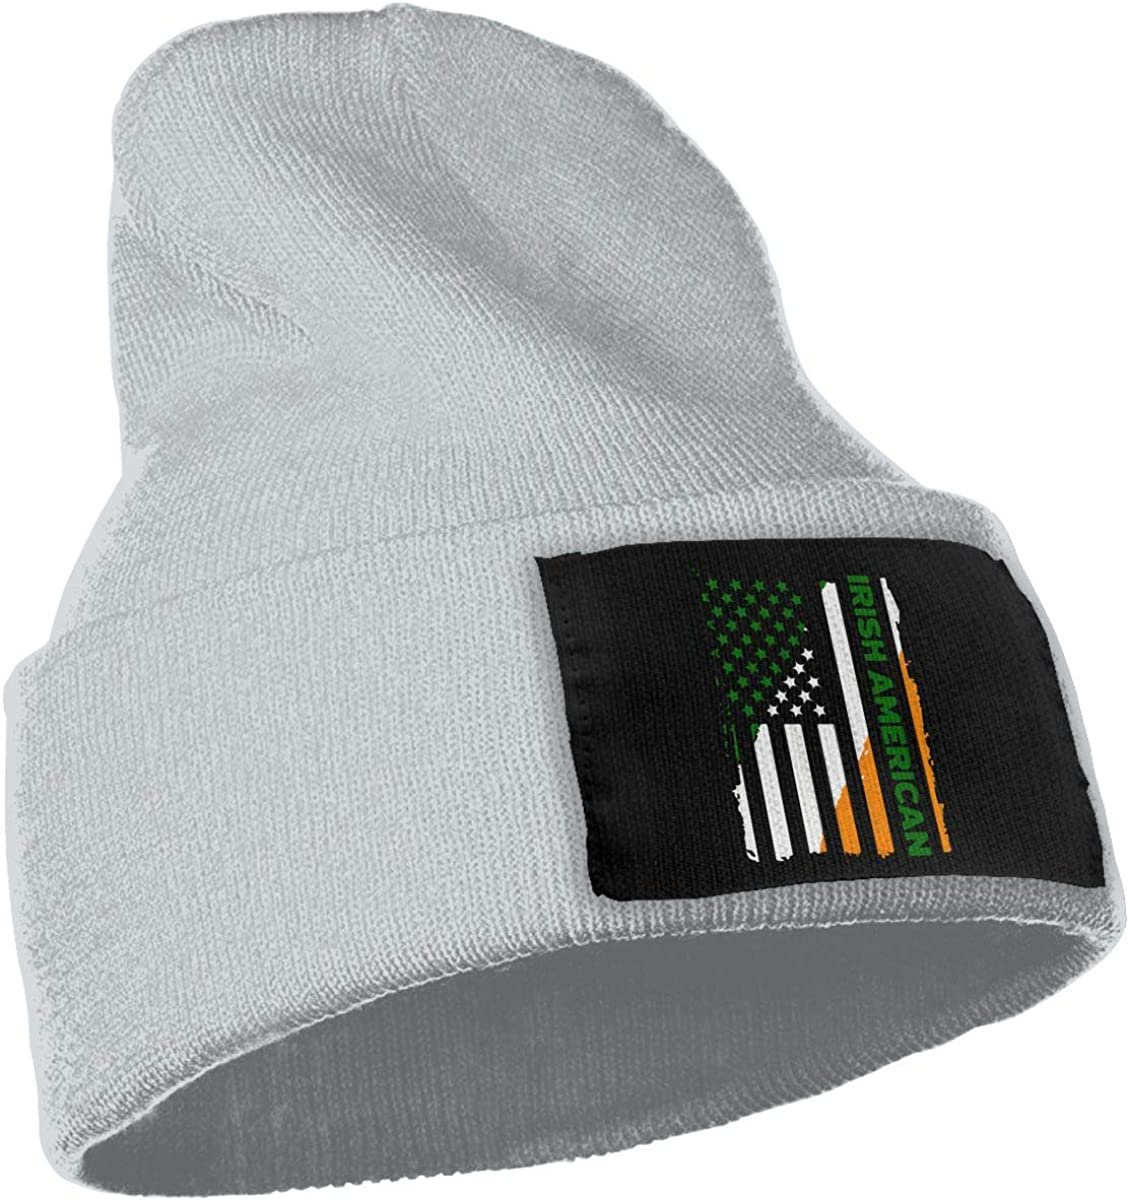 COLLJL-8 Unisex Irish American Outdoor Warm Knit Beanies Hat Soft Winter Knit Caps